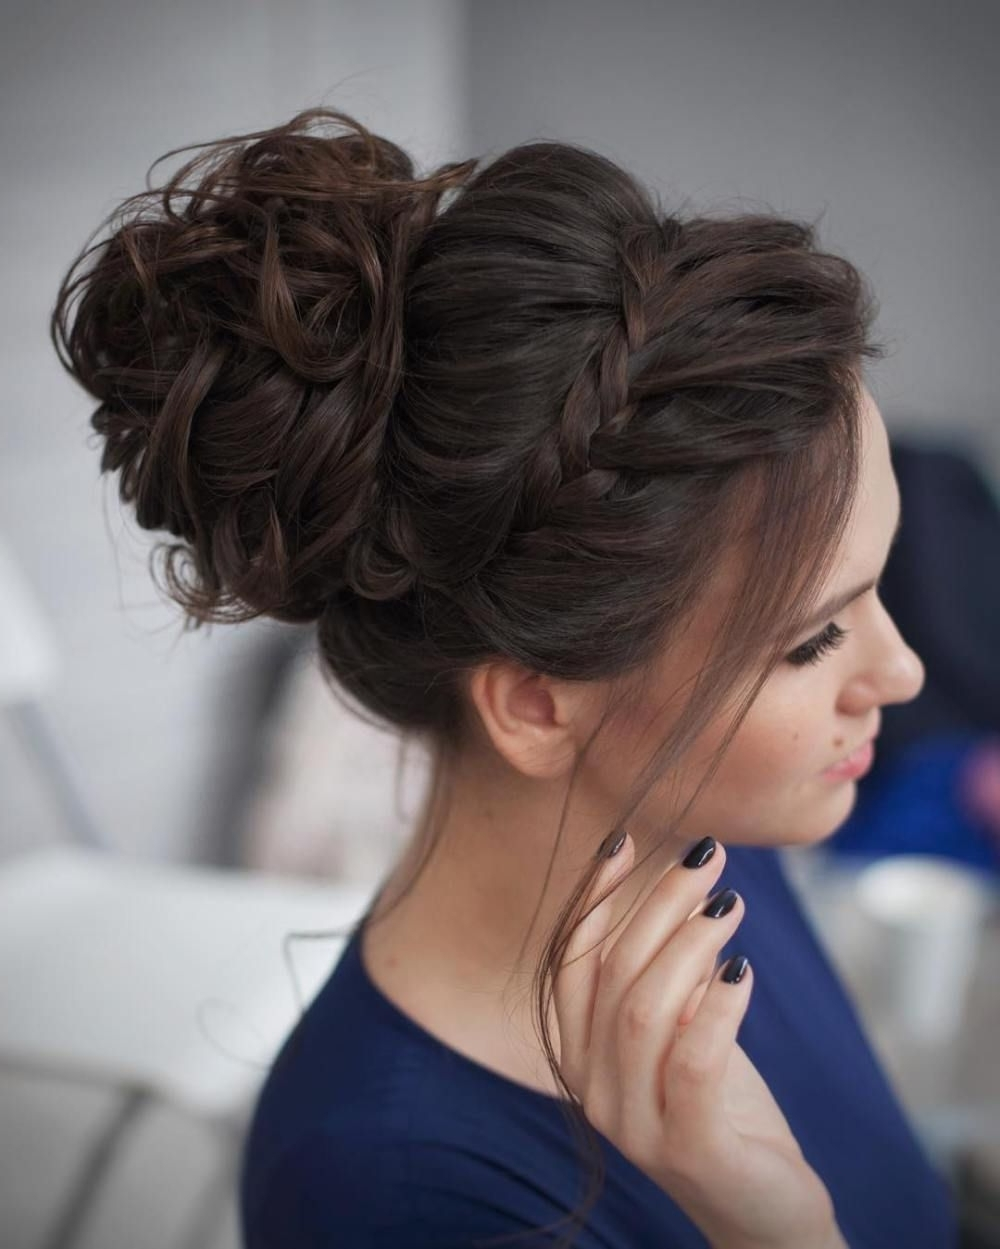 40 Most Delightful Prom Updos For Long Hair In 2018 | Updo, Prom And With Regard To Homecoming Updo Hairstyles (View 2 of 15)